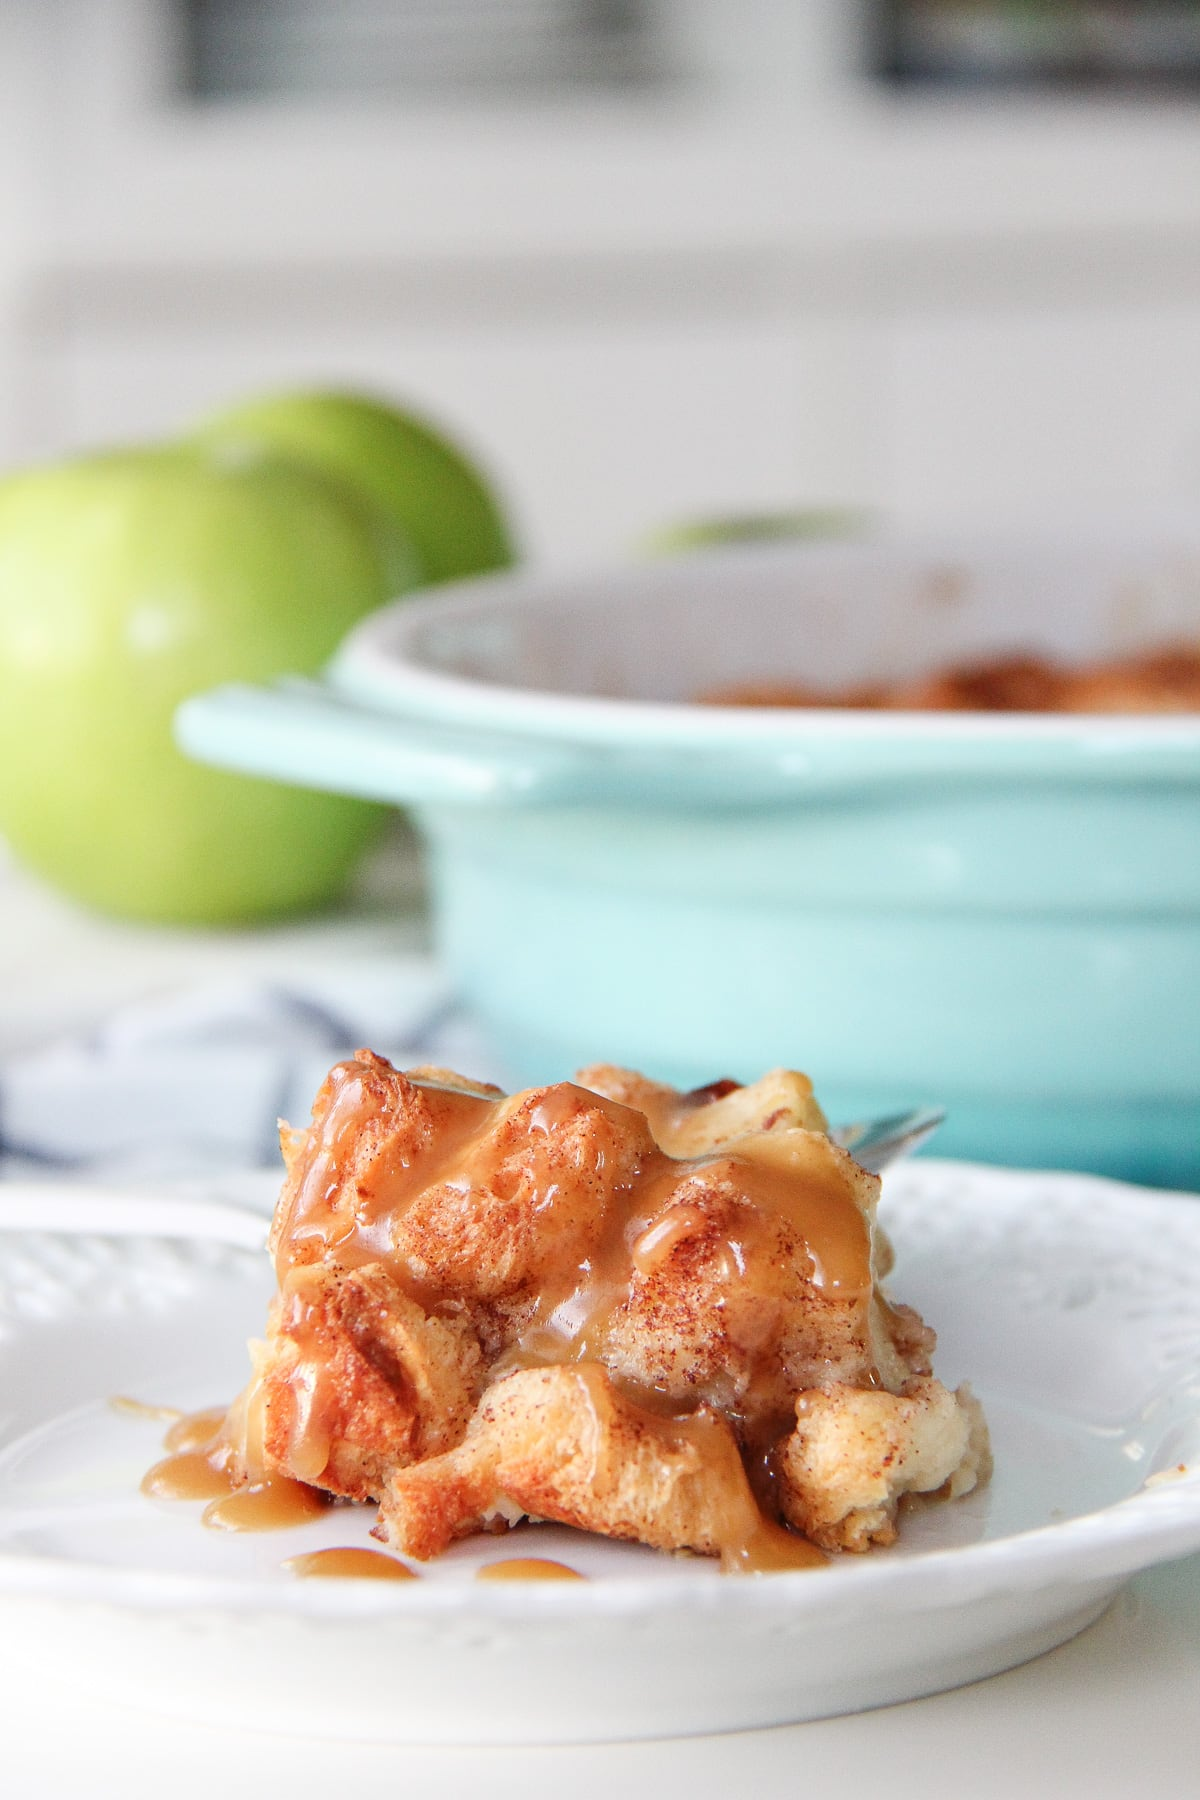 A side view of a plate of Apple French Toast drizzled with caramel